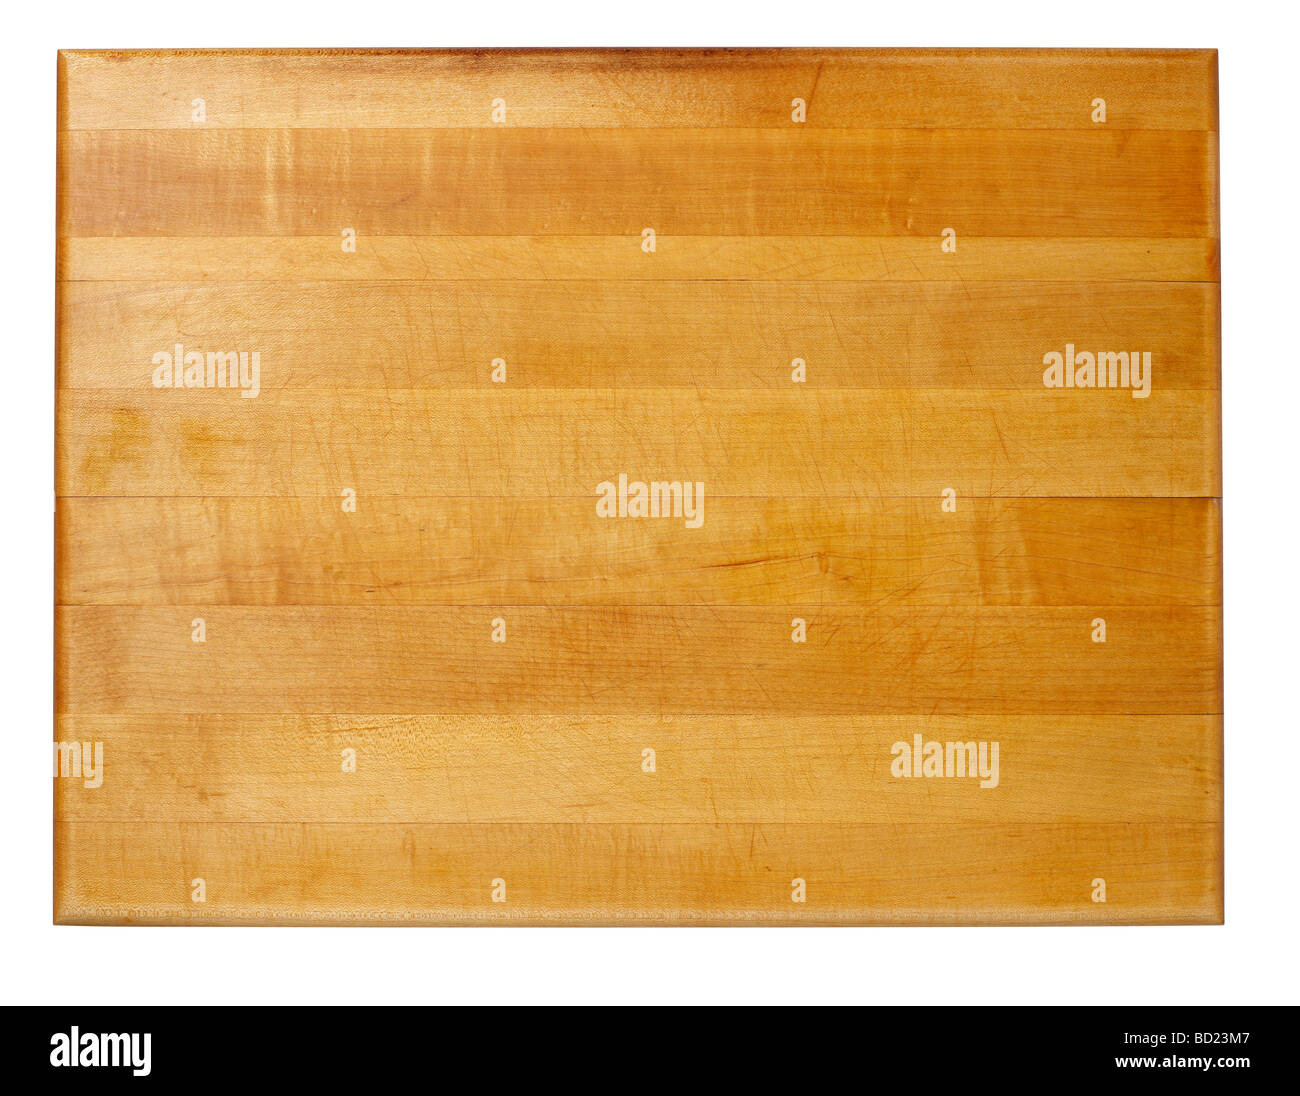 wood cutting board - Stock Image